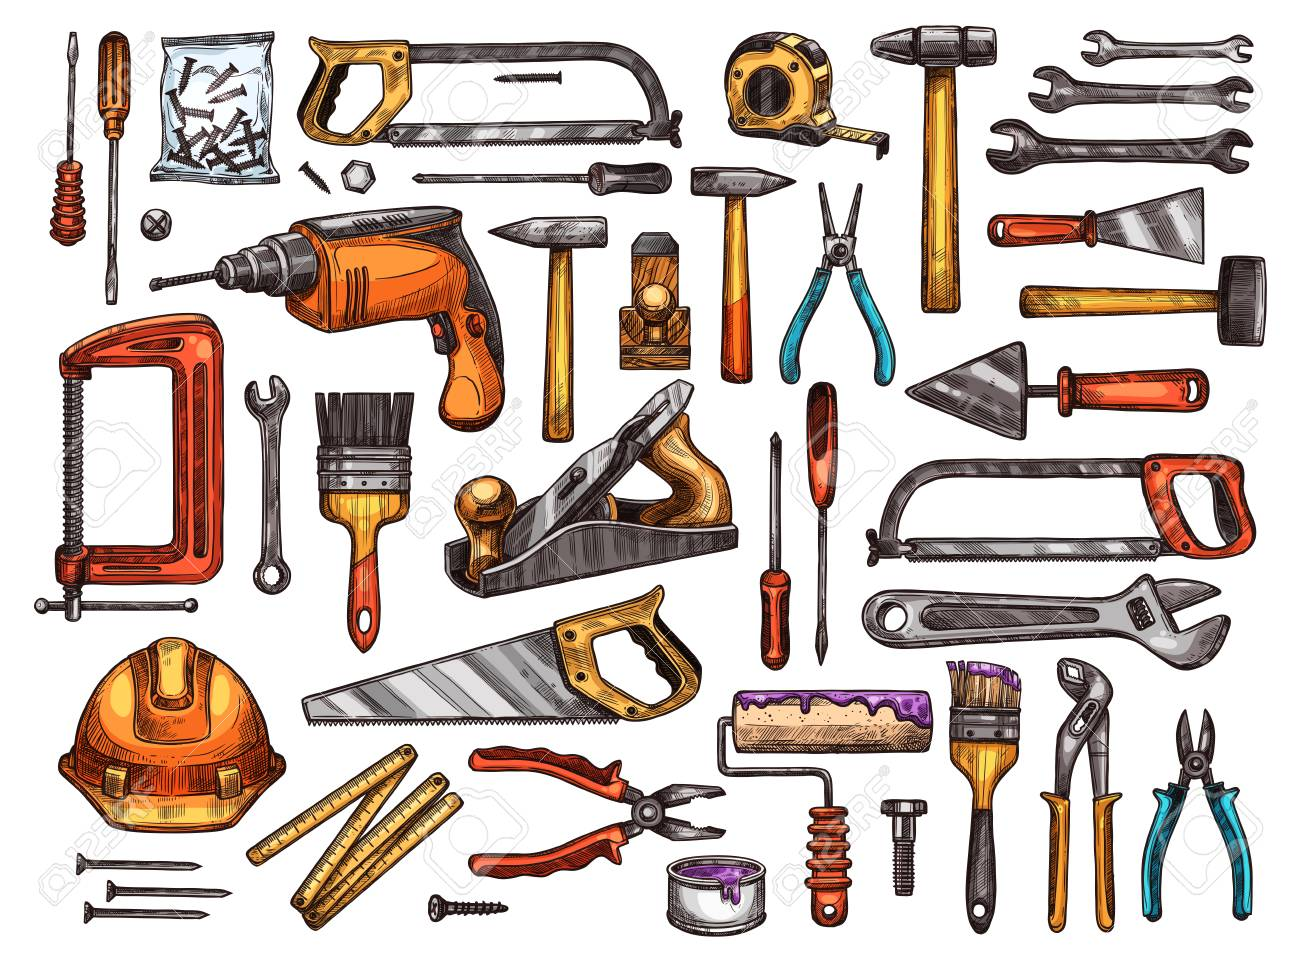 Tool for construction and repair work sketch set. Hammer, screwdriver and wrench, pliers, spanner, paint brush and roller, drill, saw, trowel and screw, tape measure, helmet and vice equipment design - 91363543